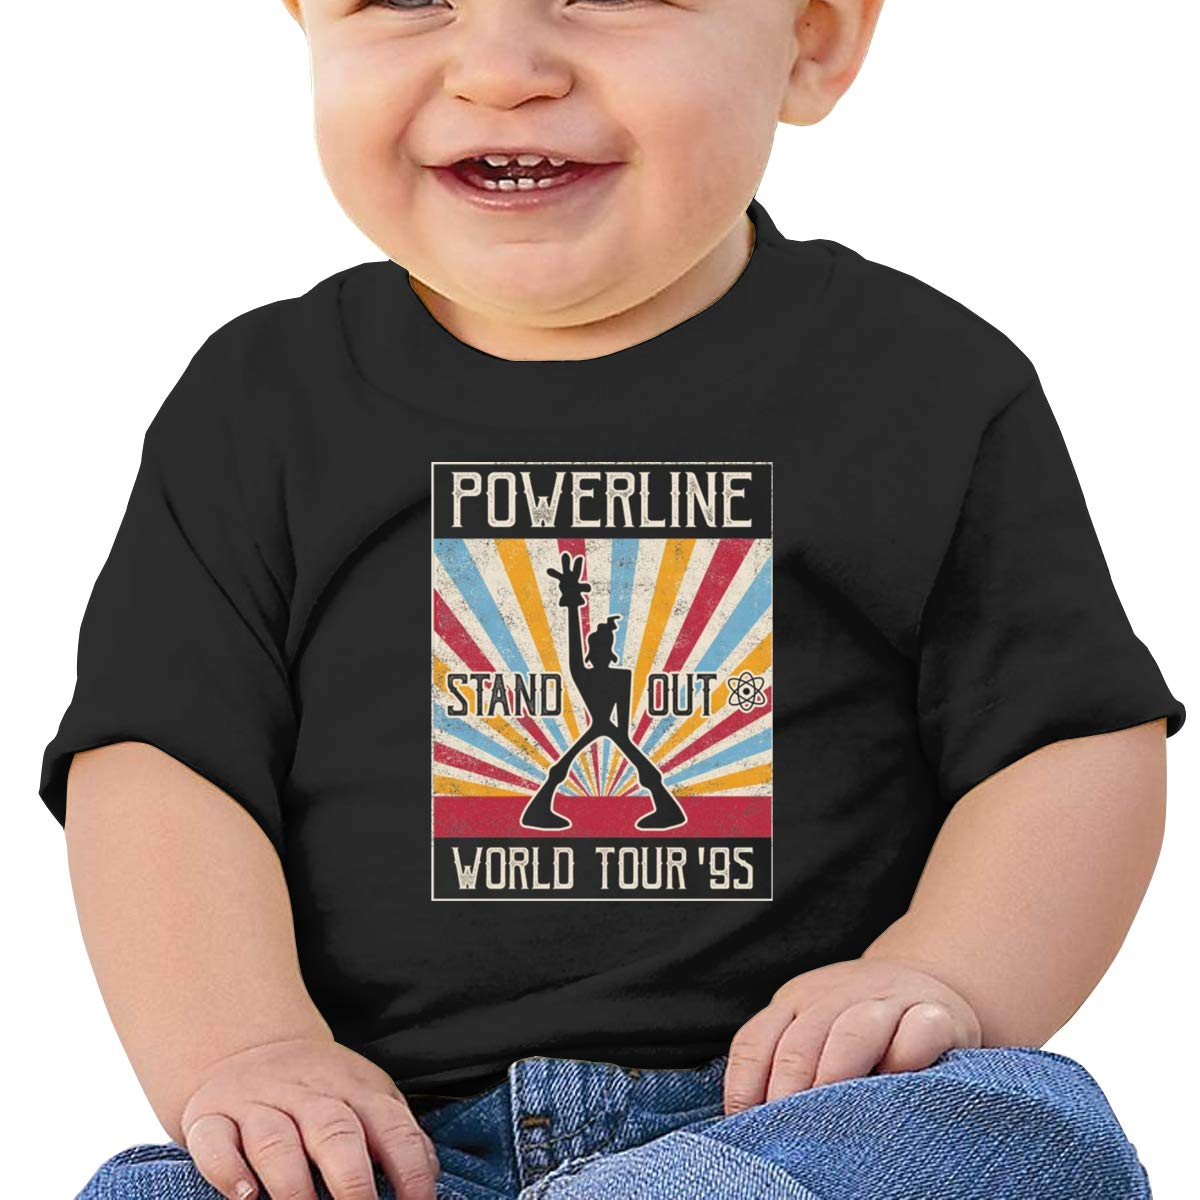 Kangtians Baby Powerline Stand Out Shirt Childrens Cotton Tee